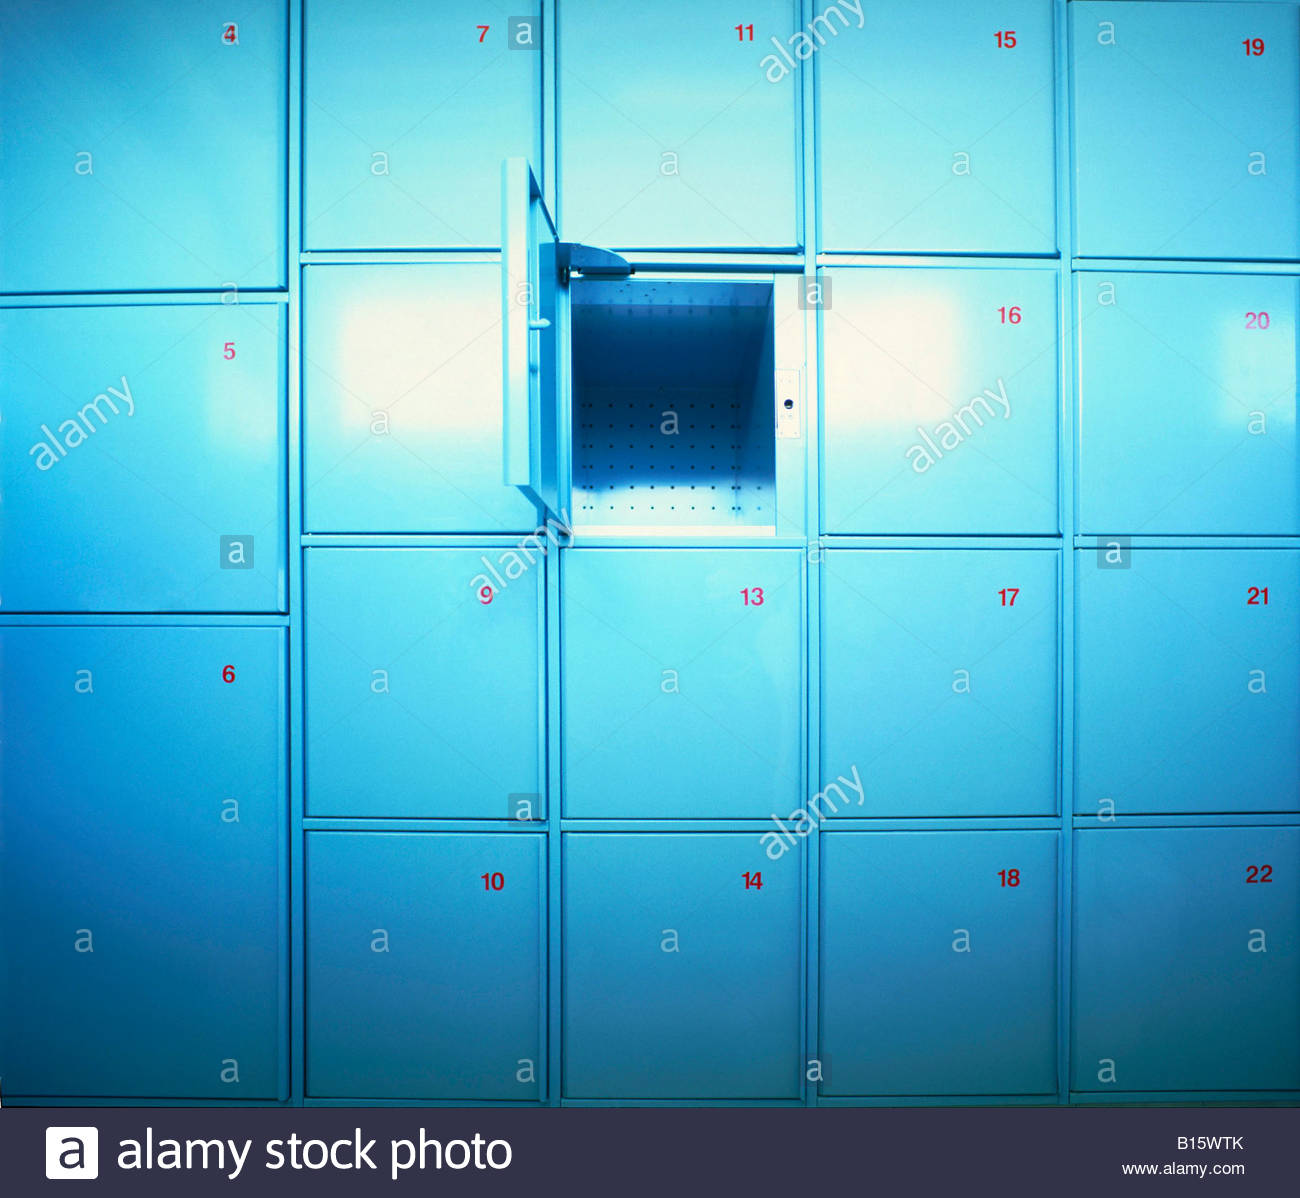 Rows of lockers - Stock Image